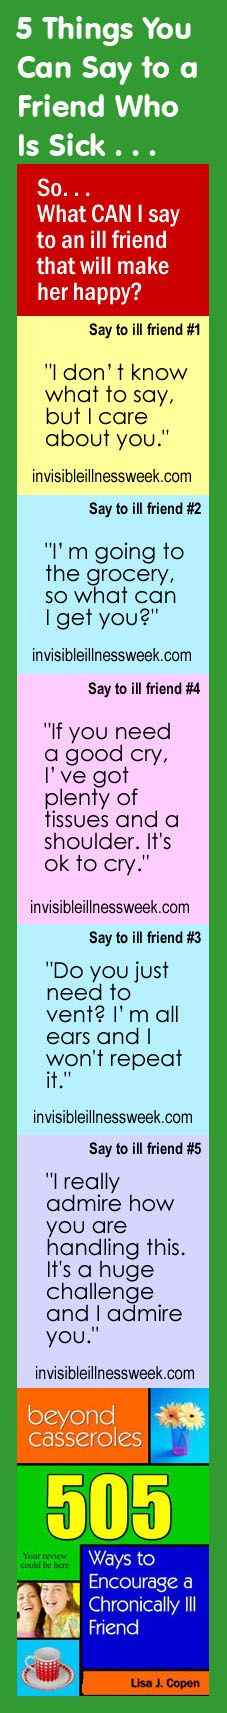 So, what can you say to an ill friend that will make her happy? Source: http://invisibleillnessweek.com/2012/08/24/help-a-friend